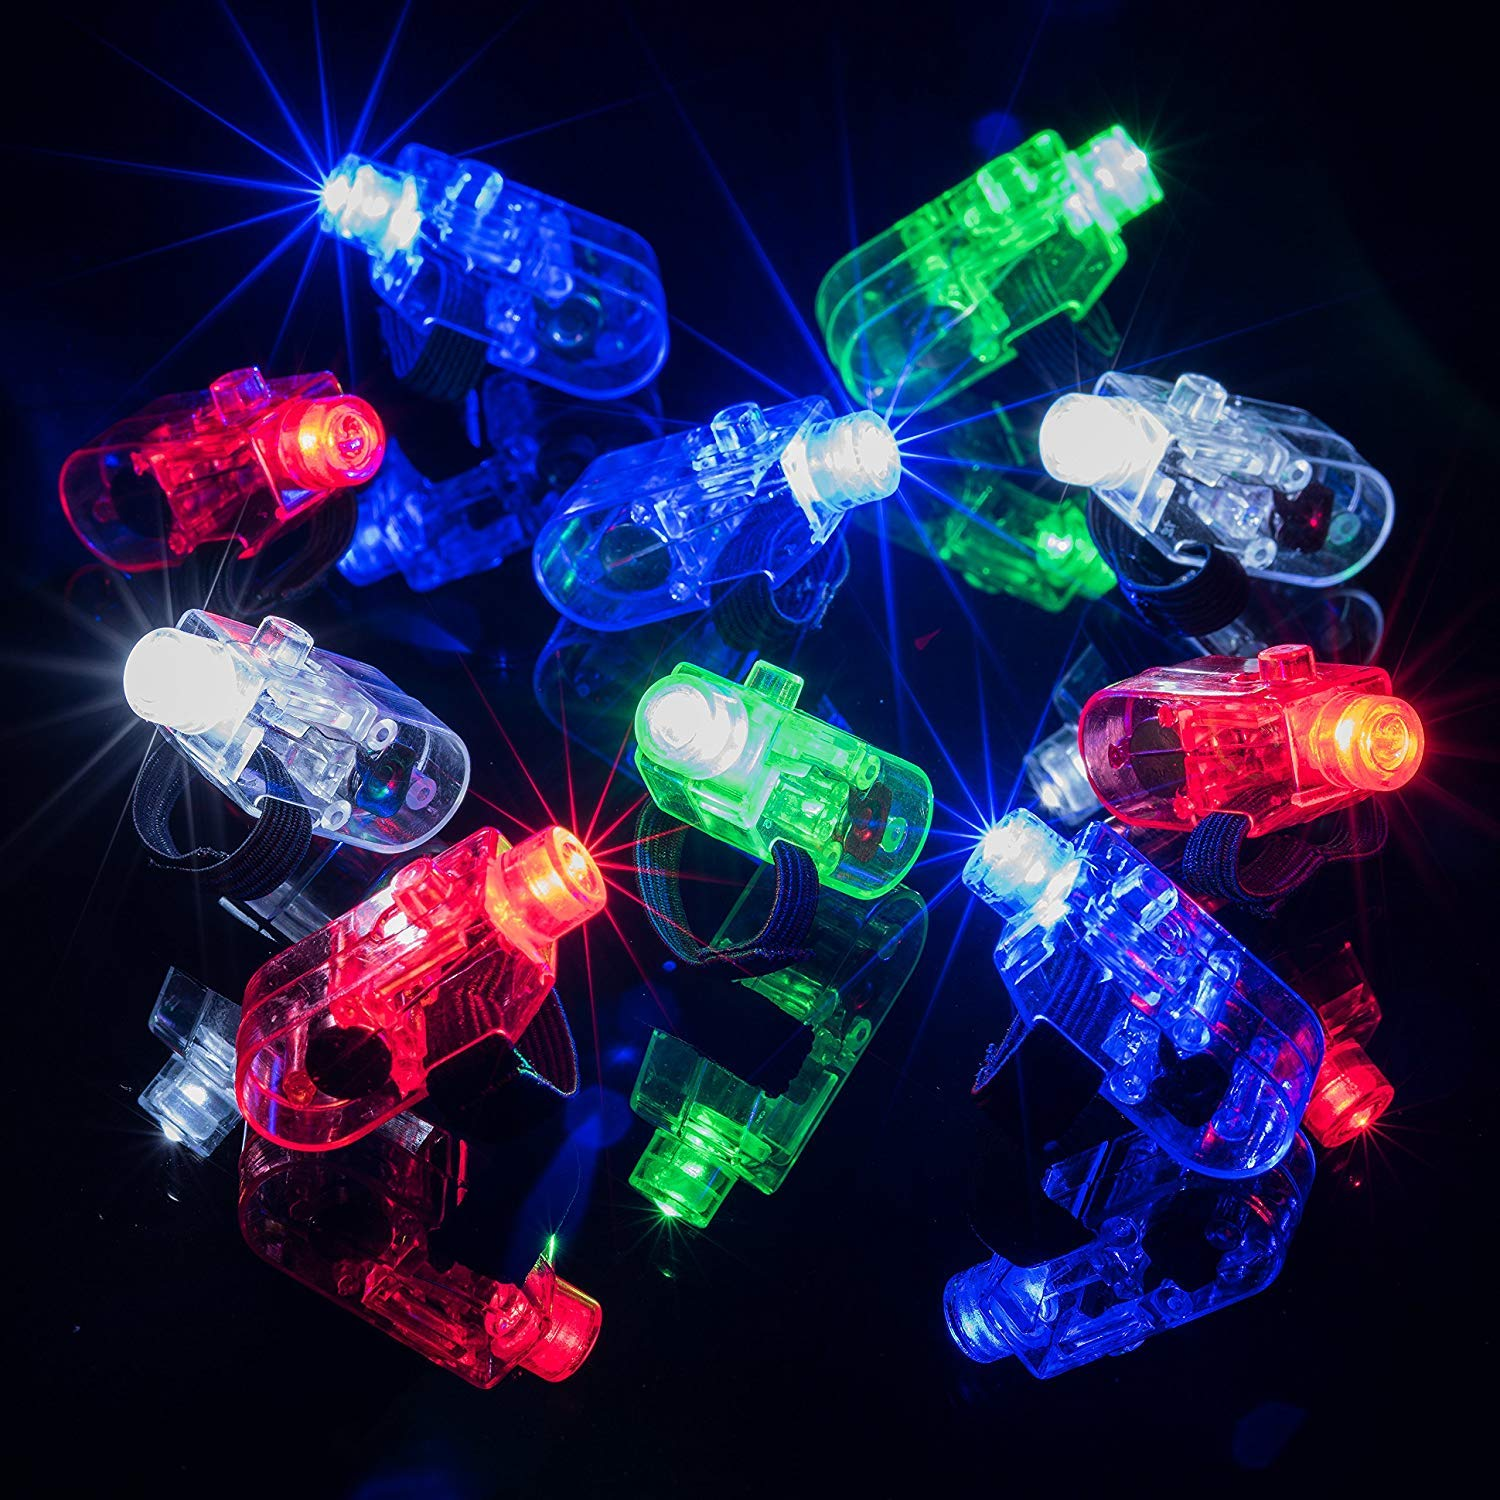 68 Pack LED Light Up Toys Halloween LED Glow Party Favors for Kids Glow in the Dark Party Supplies 4 Flashing Slotted Shades Glasses 10 Glow Rings 50 LED Finger Lights 5 LED Bracelets Christmas Gift by Godlike (Image #2)